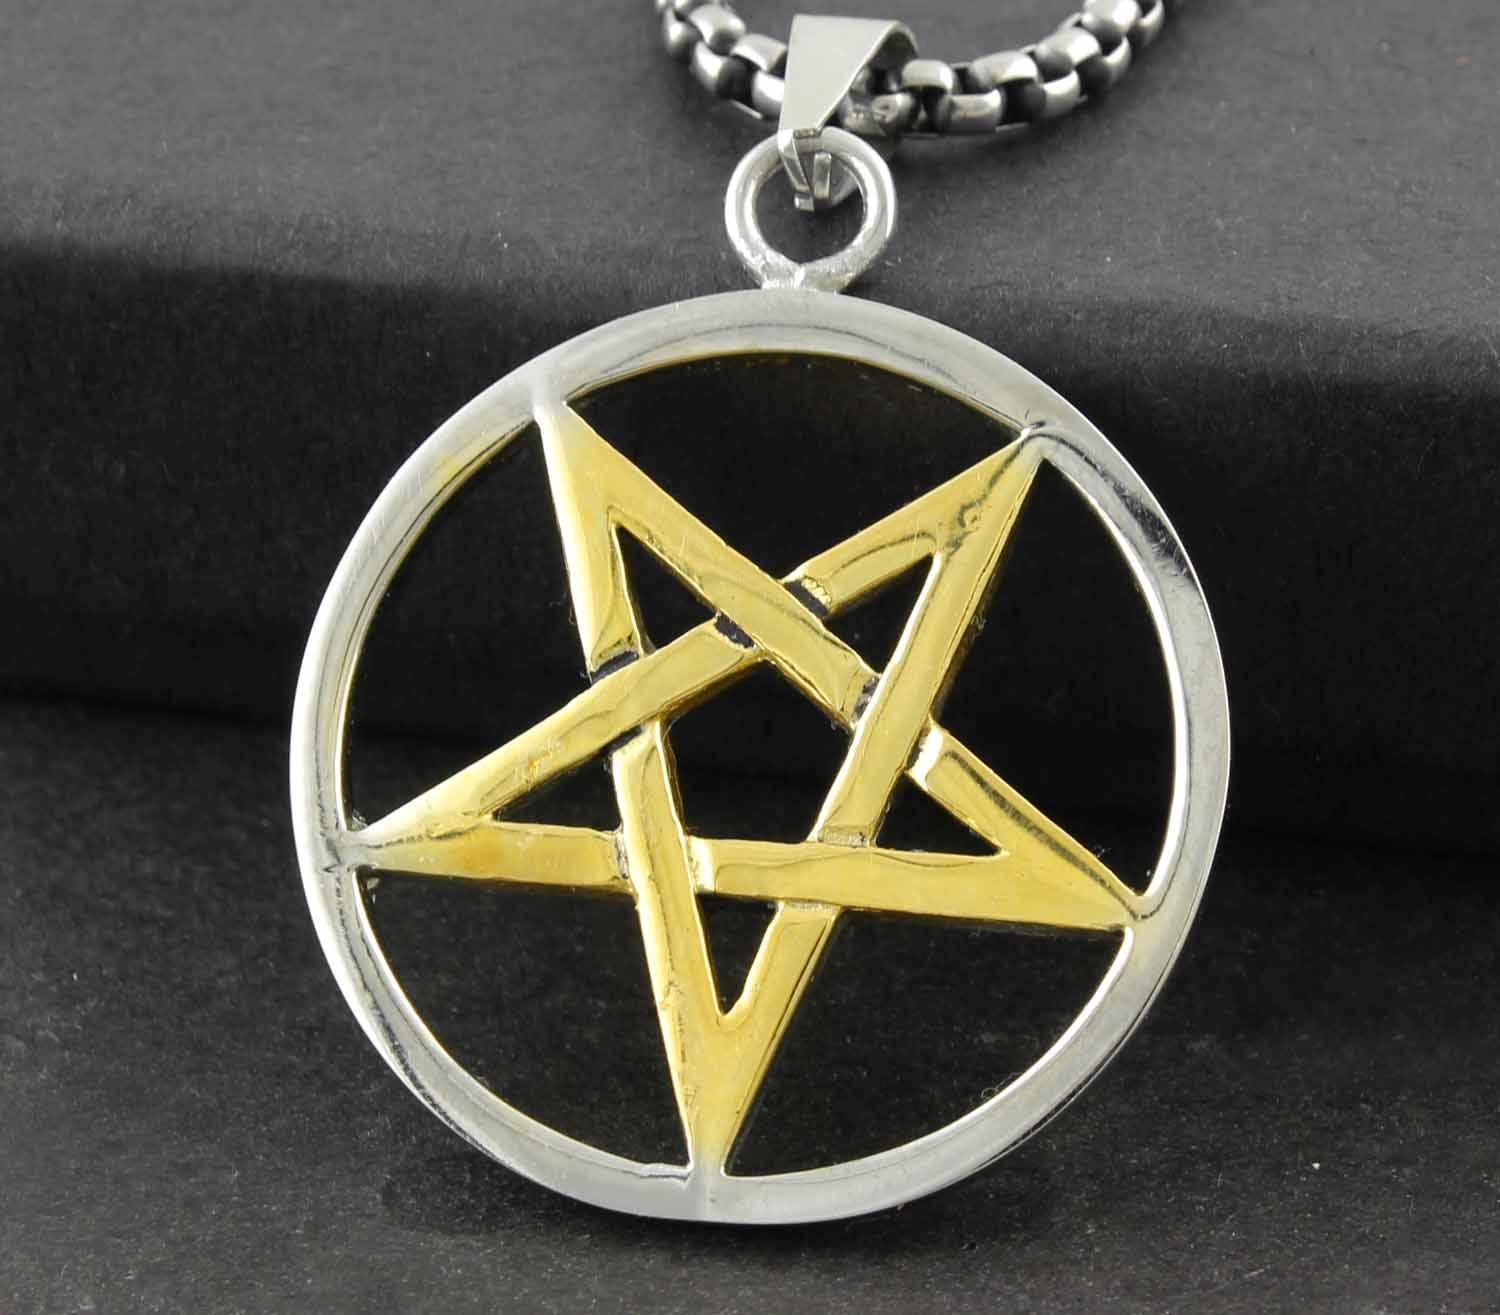 Wholesale mens 316l stainless steel gothic satanic pentacle star wholesale mens 316l stainless steel gothic satanic pentacle star pendant necklace pendants gold necklace for women from rockervogue 2477 dhgate aloadofball Choice Image